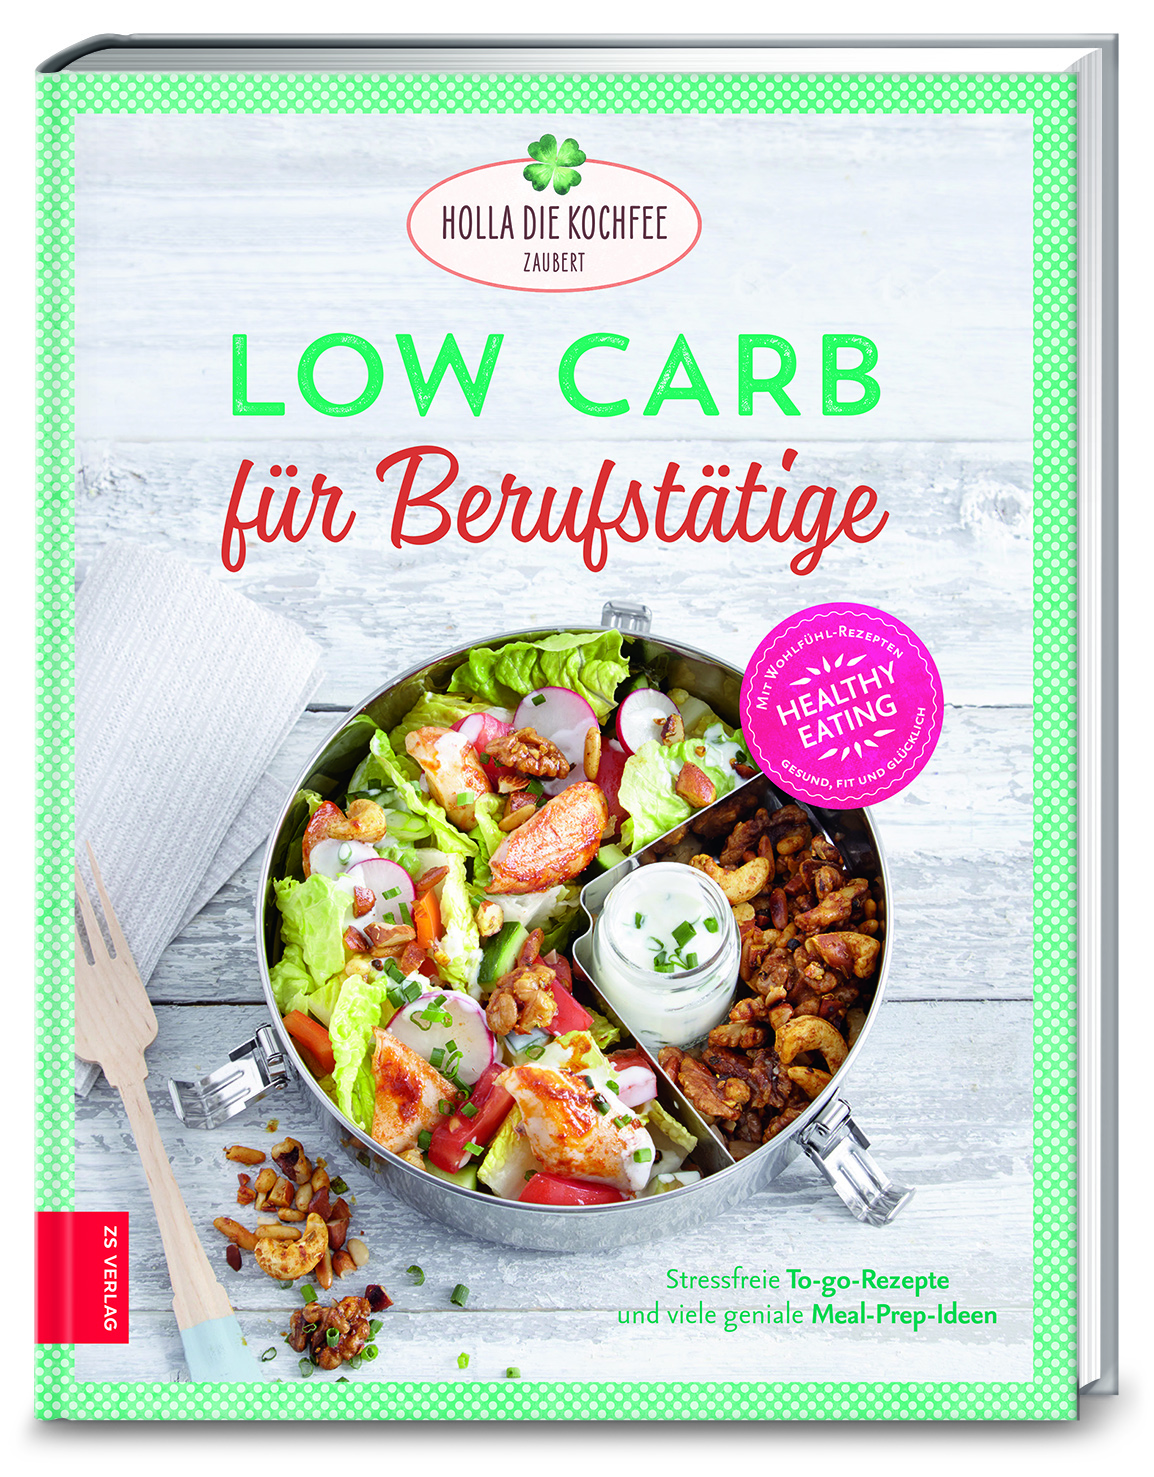 Low Carb für Berufstätige